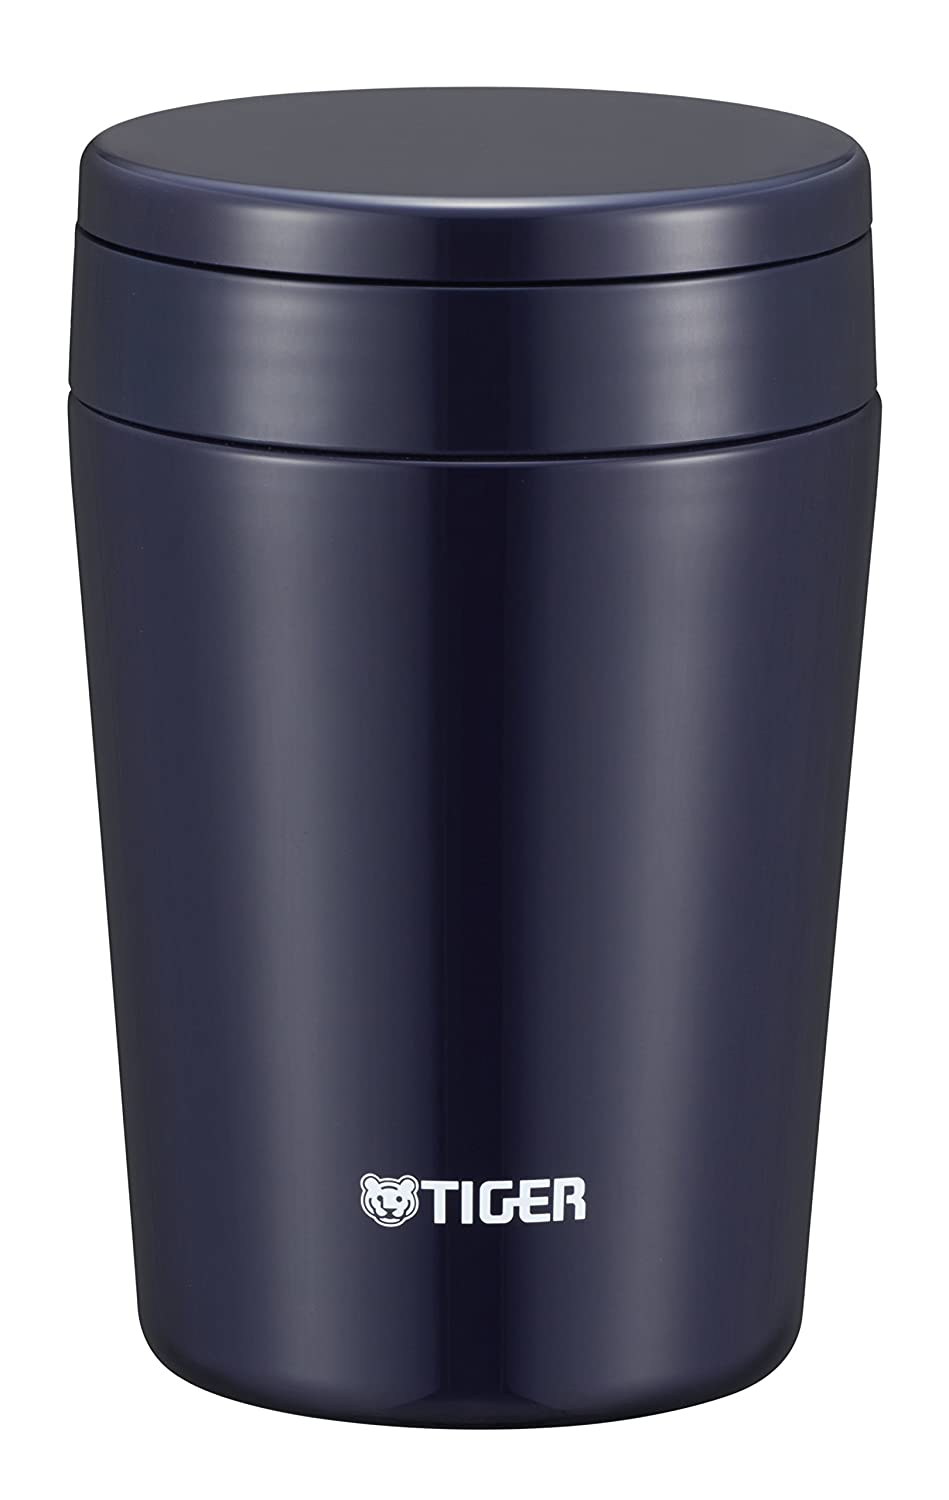 Tiger thermos vacuum insulation soup jar 380ml warm lunch box wide-mouth round-bottom indigo blue MCL-B038-AI